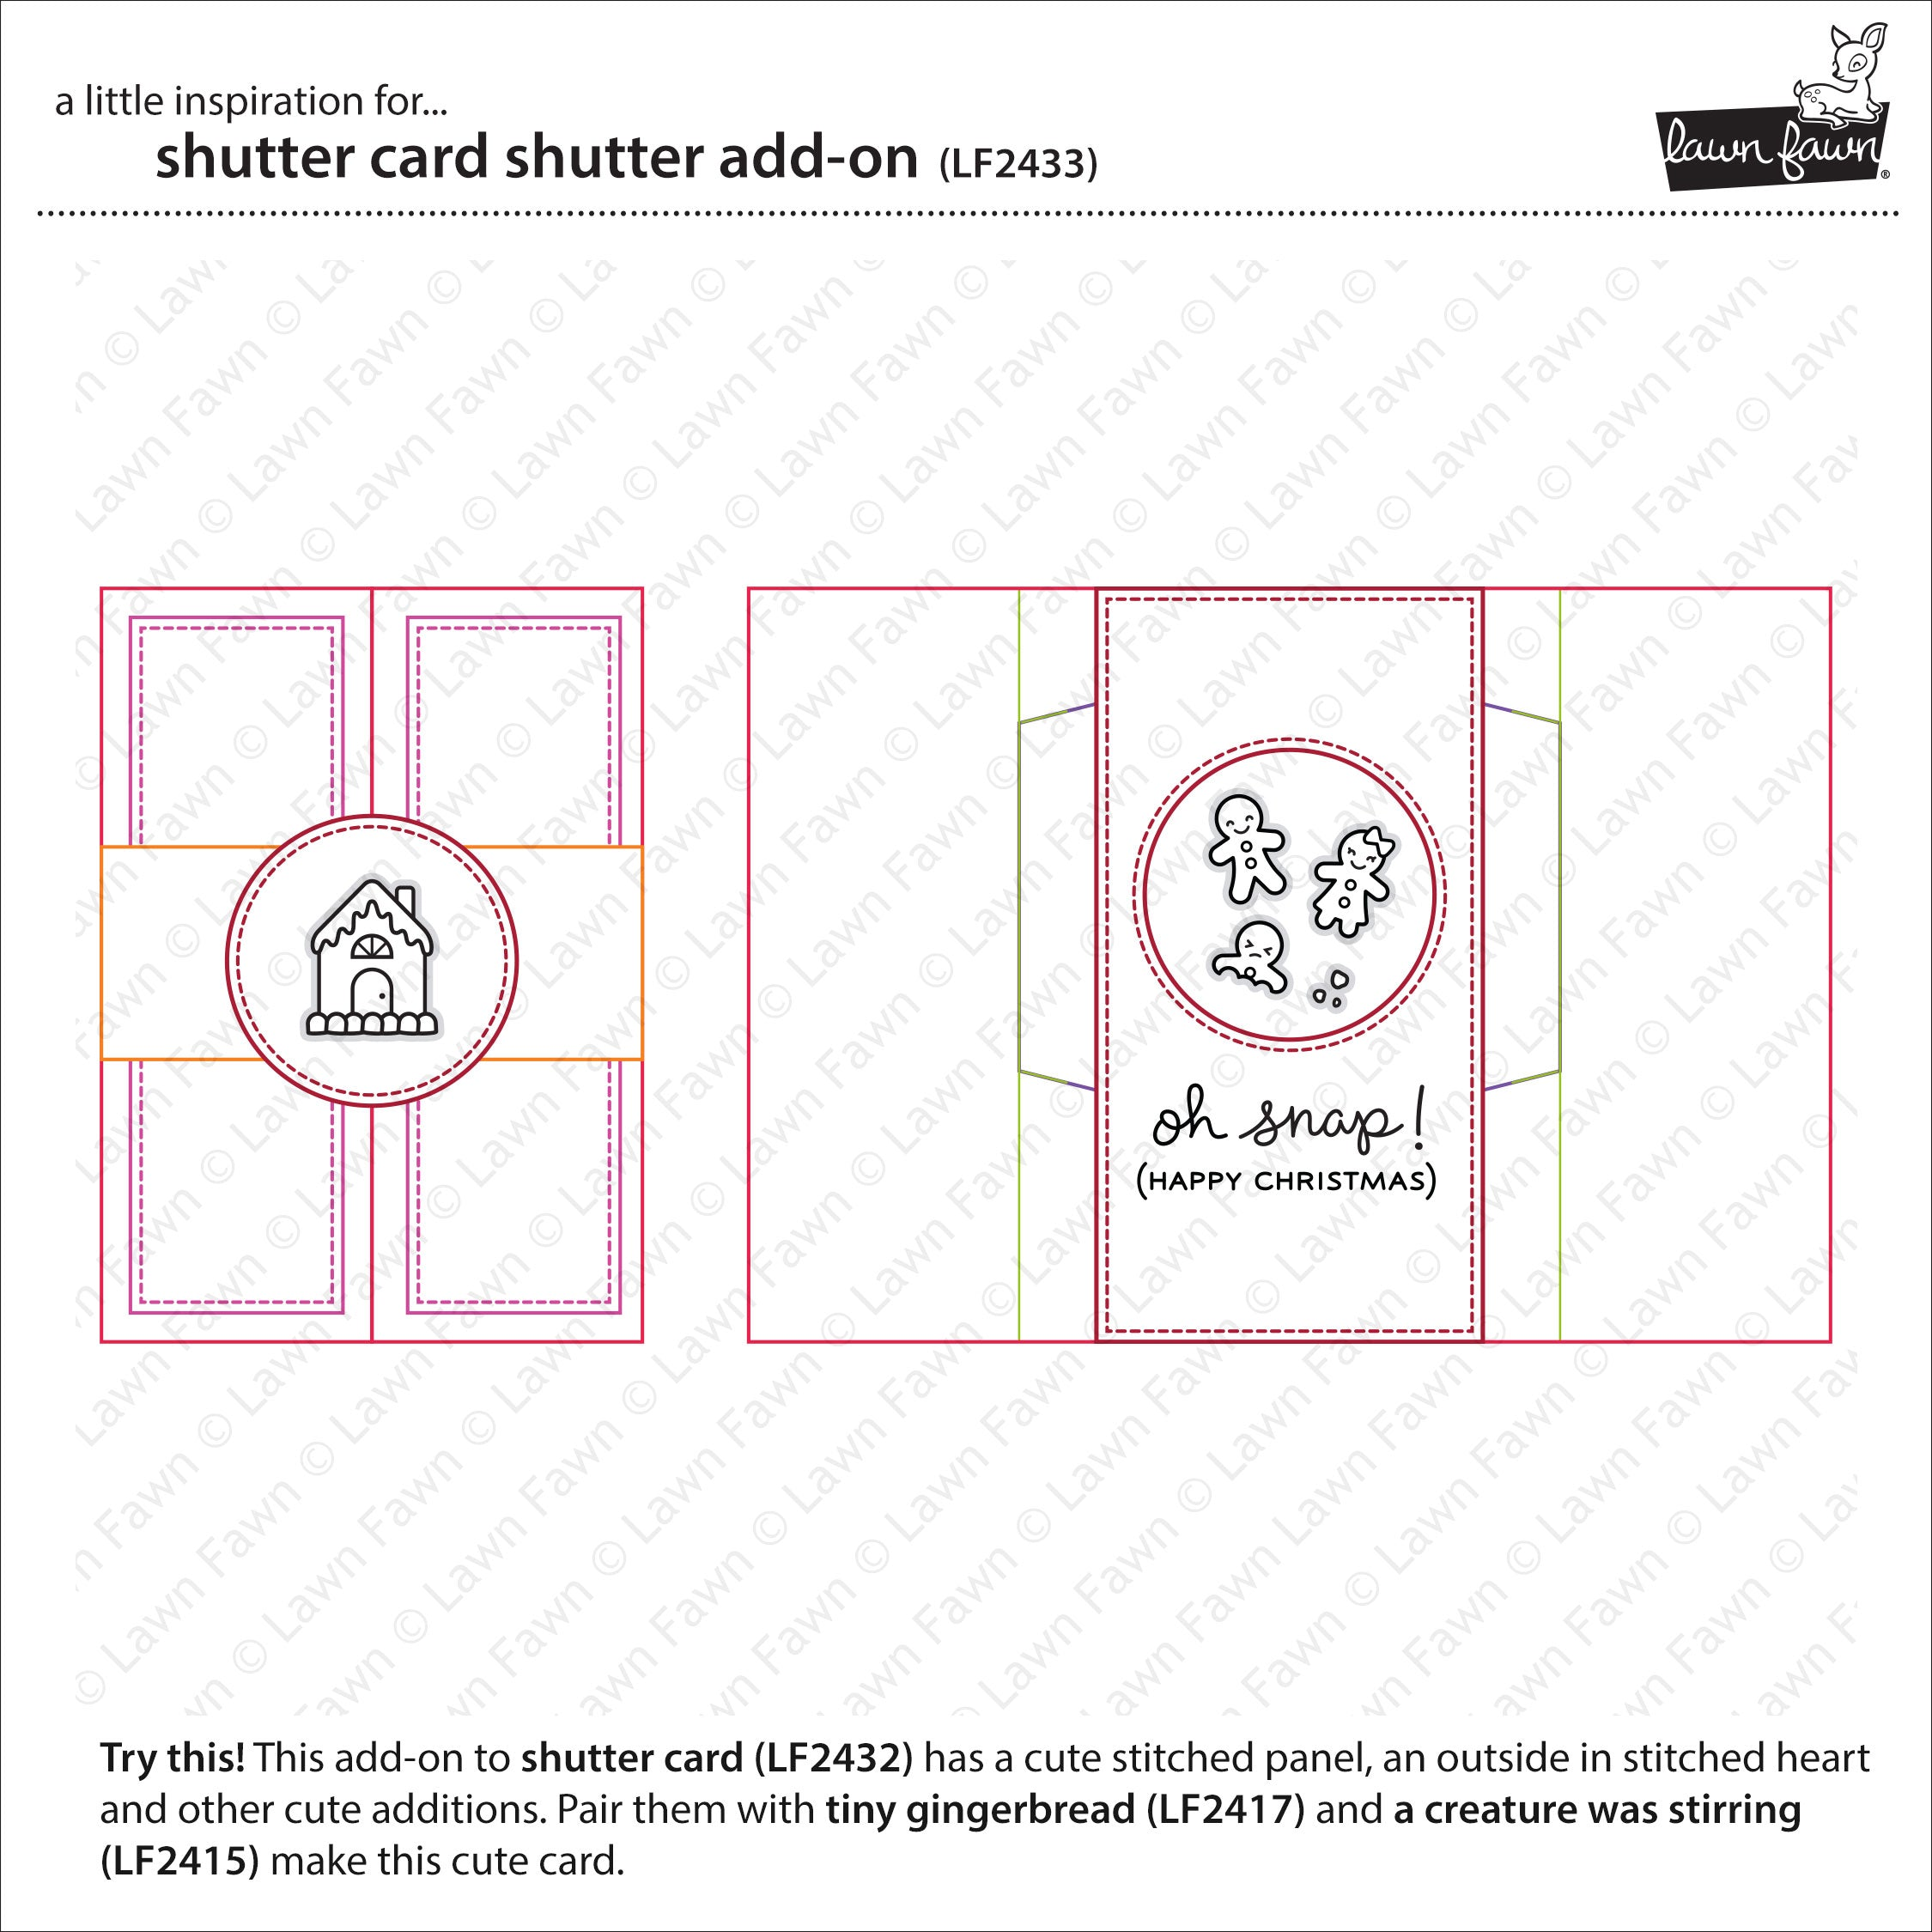 shutter card add-on